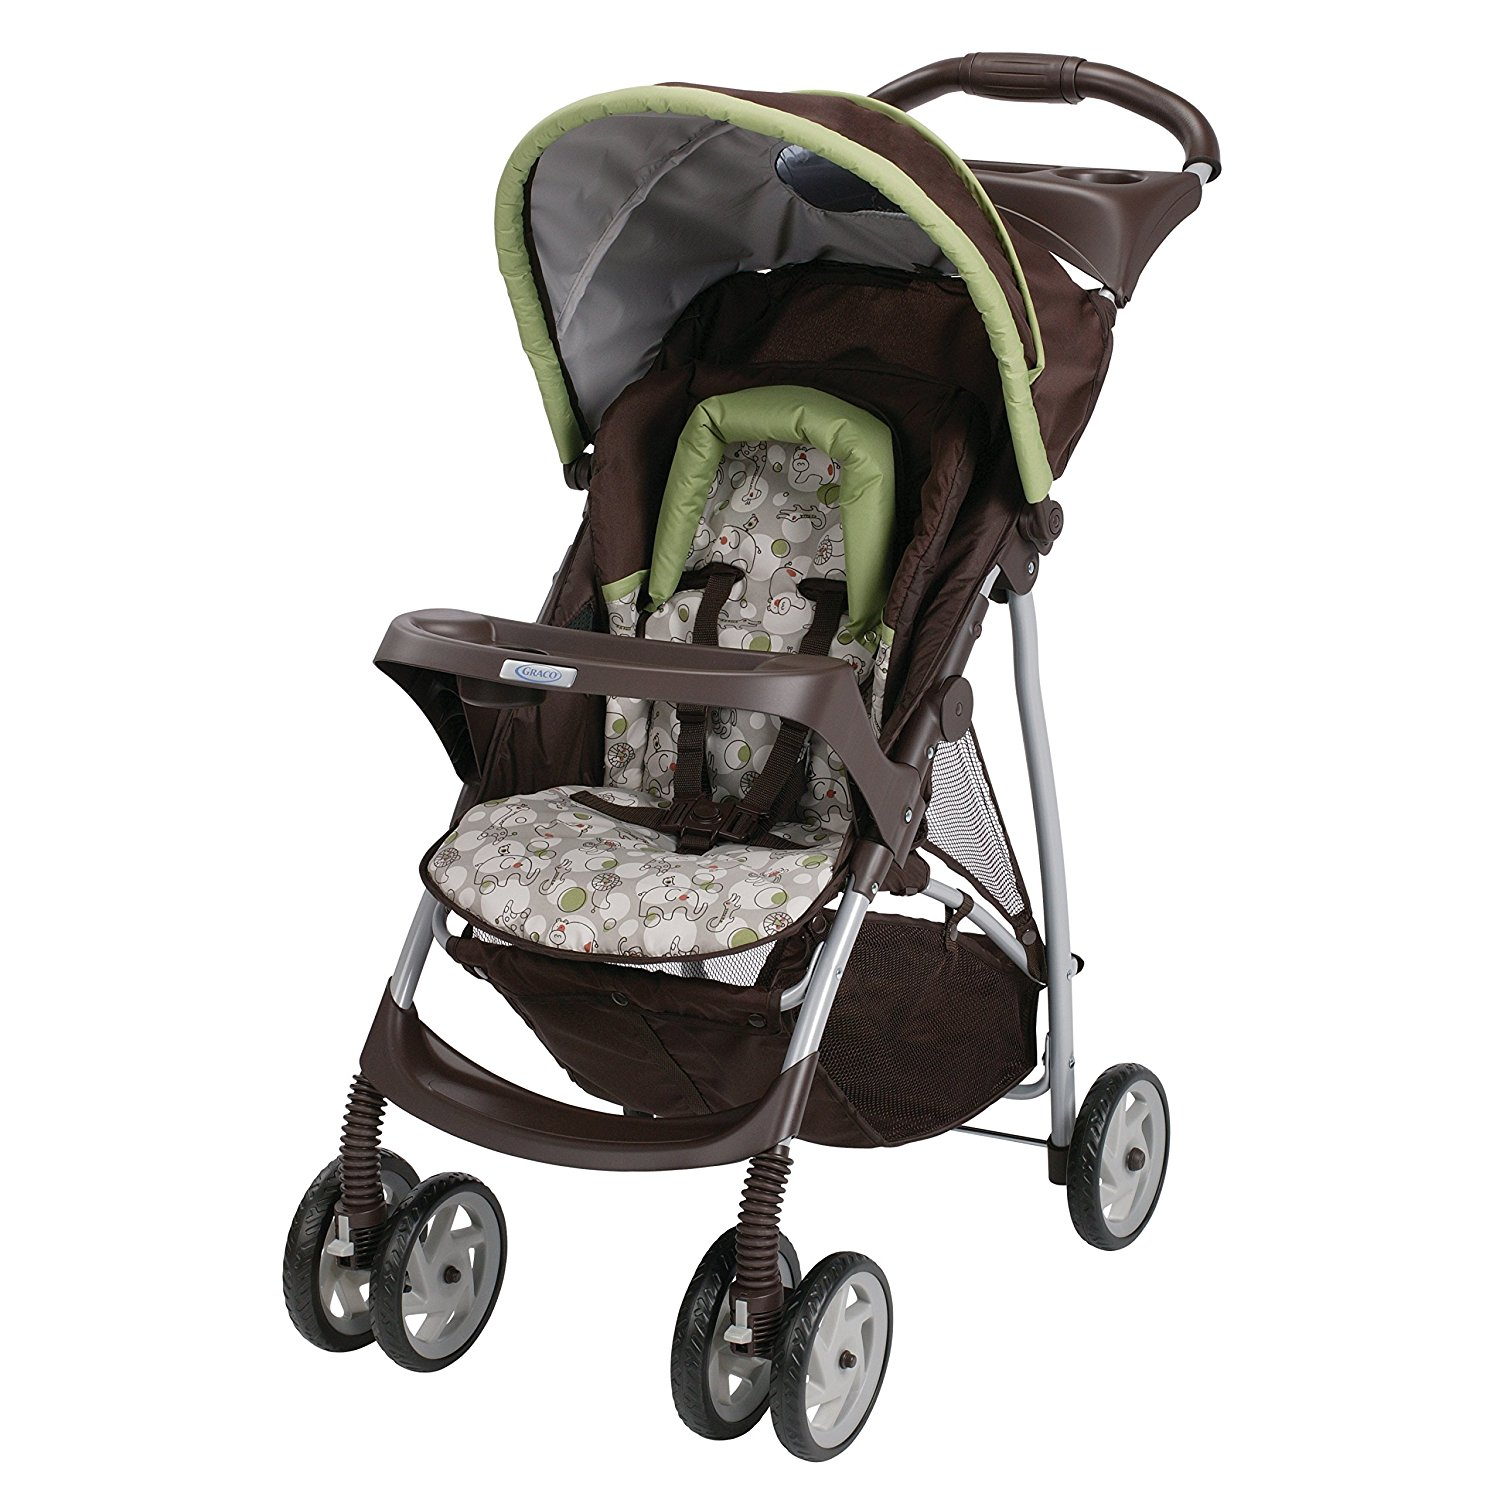 Graco LiteRider Click Connect Stroller  - $79.99